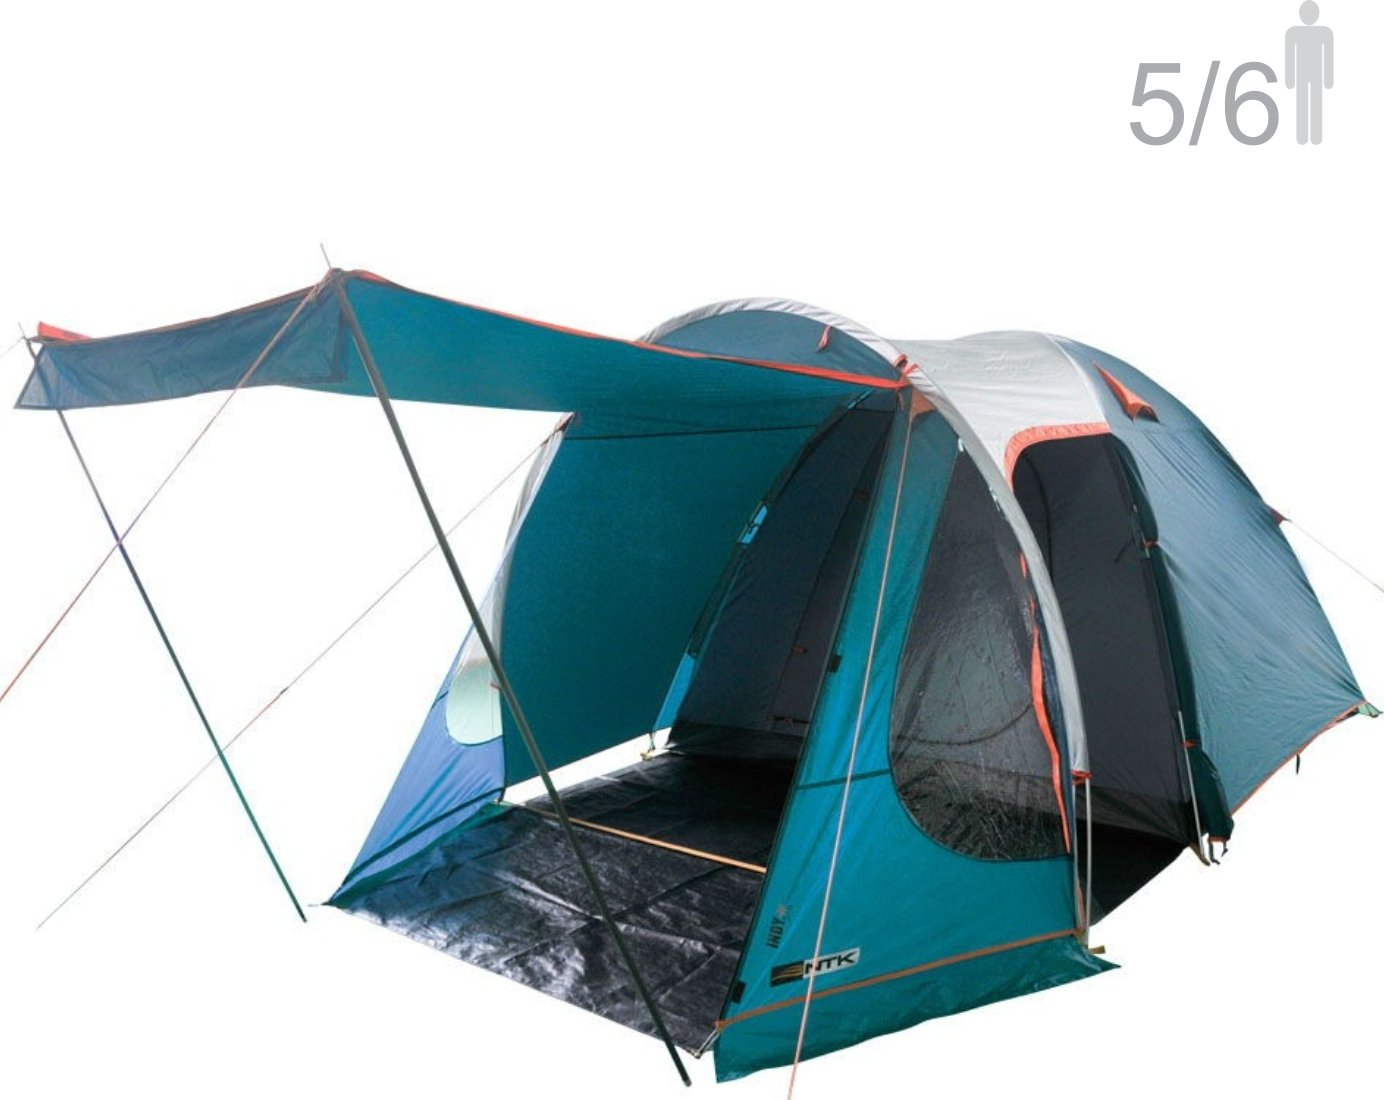 NTK Indy GT XL sleeps up to 6 person 14.2 by 8.0 FT Outdoor Dome Family Camping Tent 100% Waterproof 2500mm, European Design,Easy Assembly, Durable Fabric Full Coverage Rainfly - Micro Mosquito Mesh.